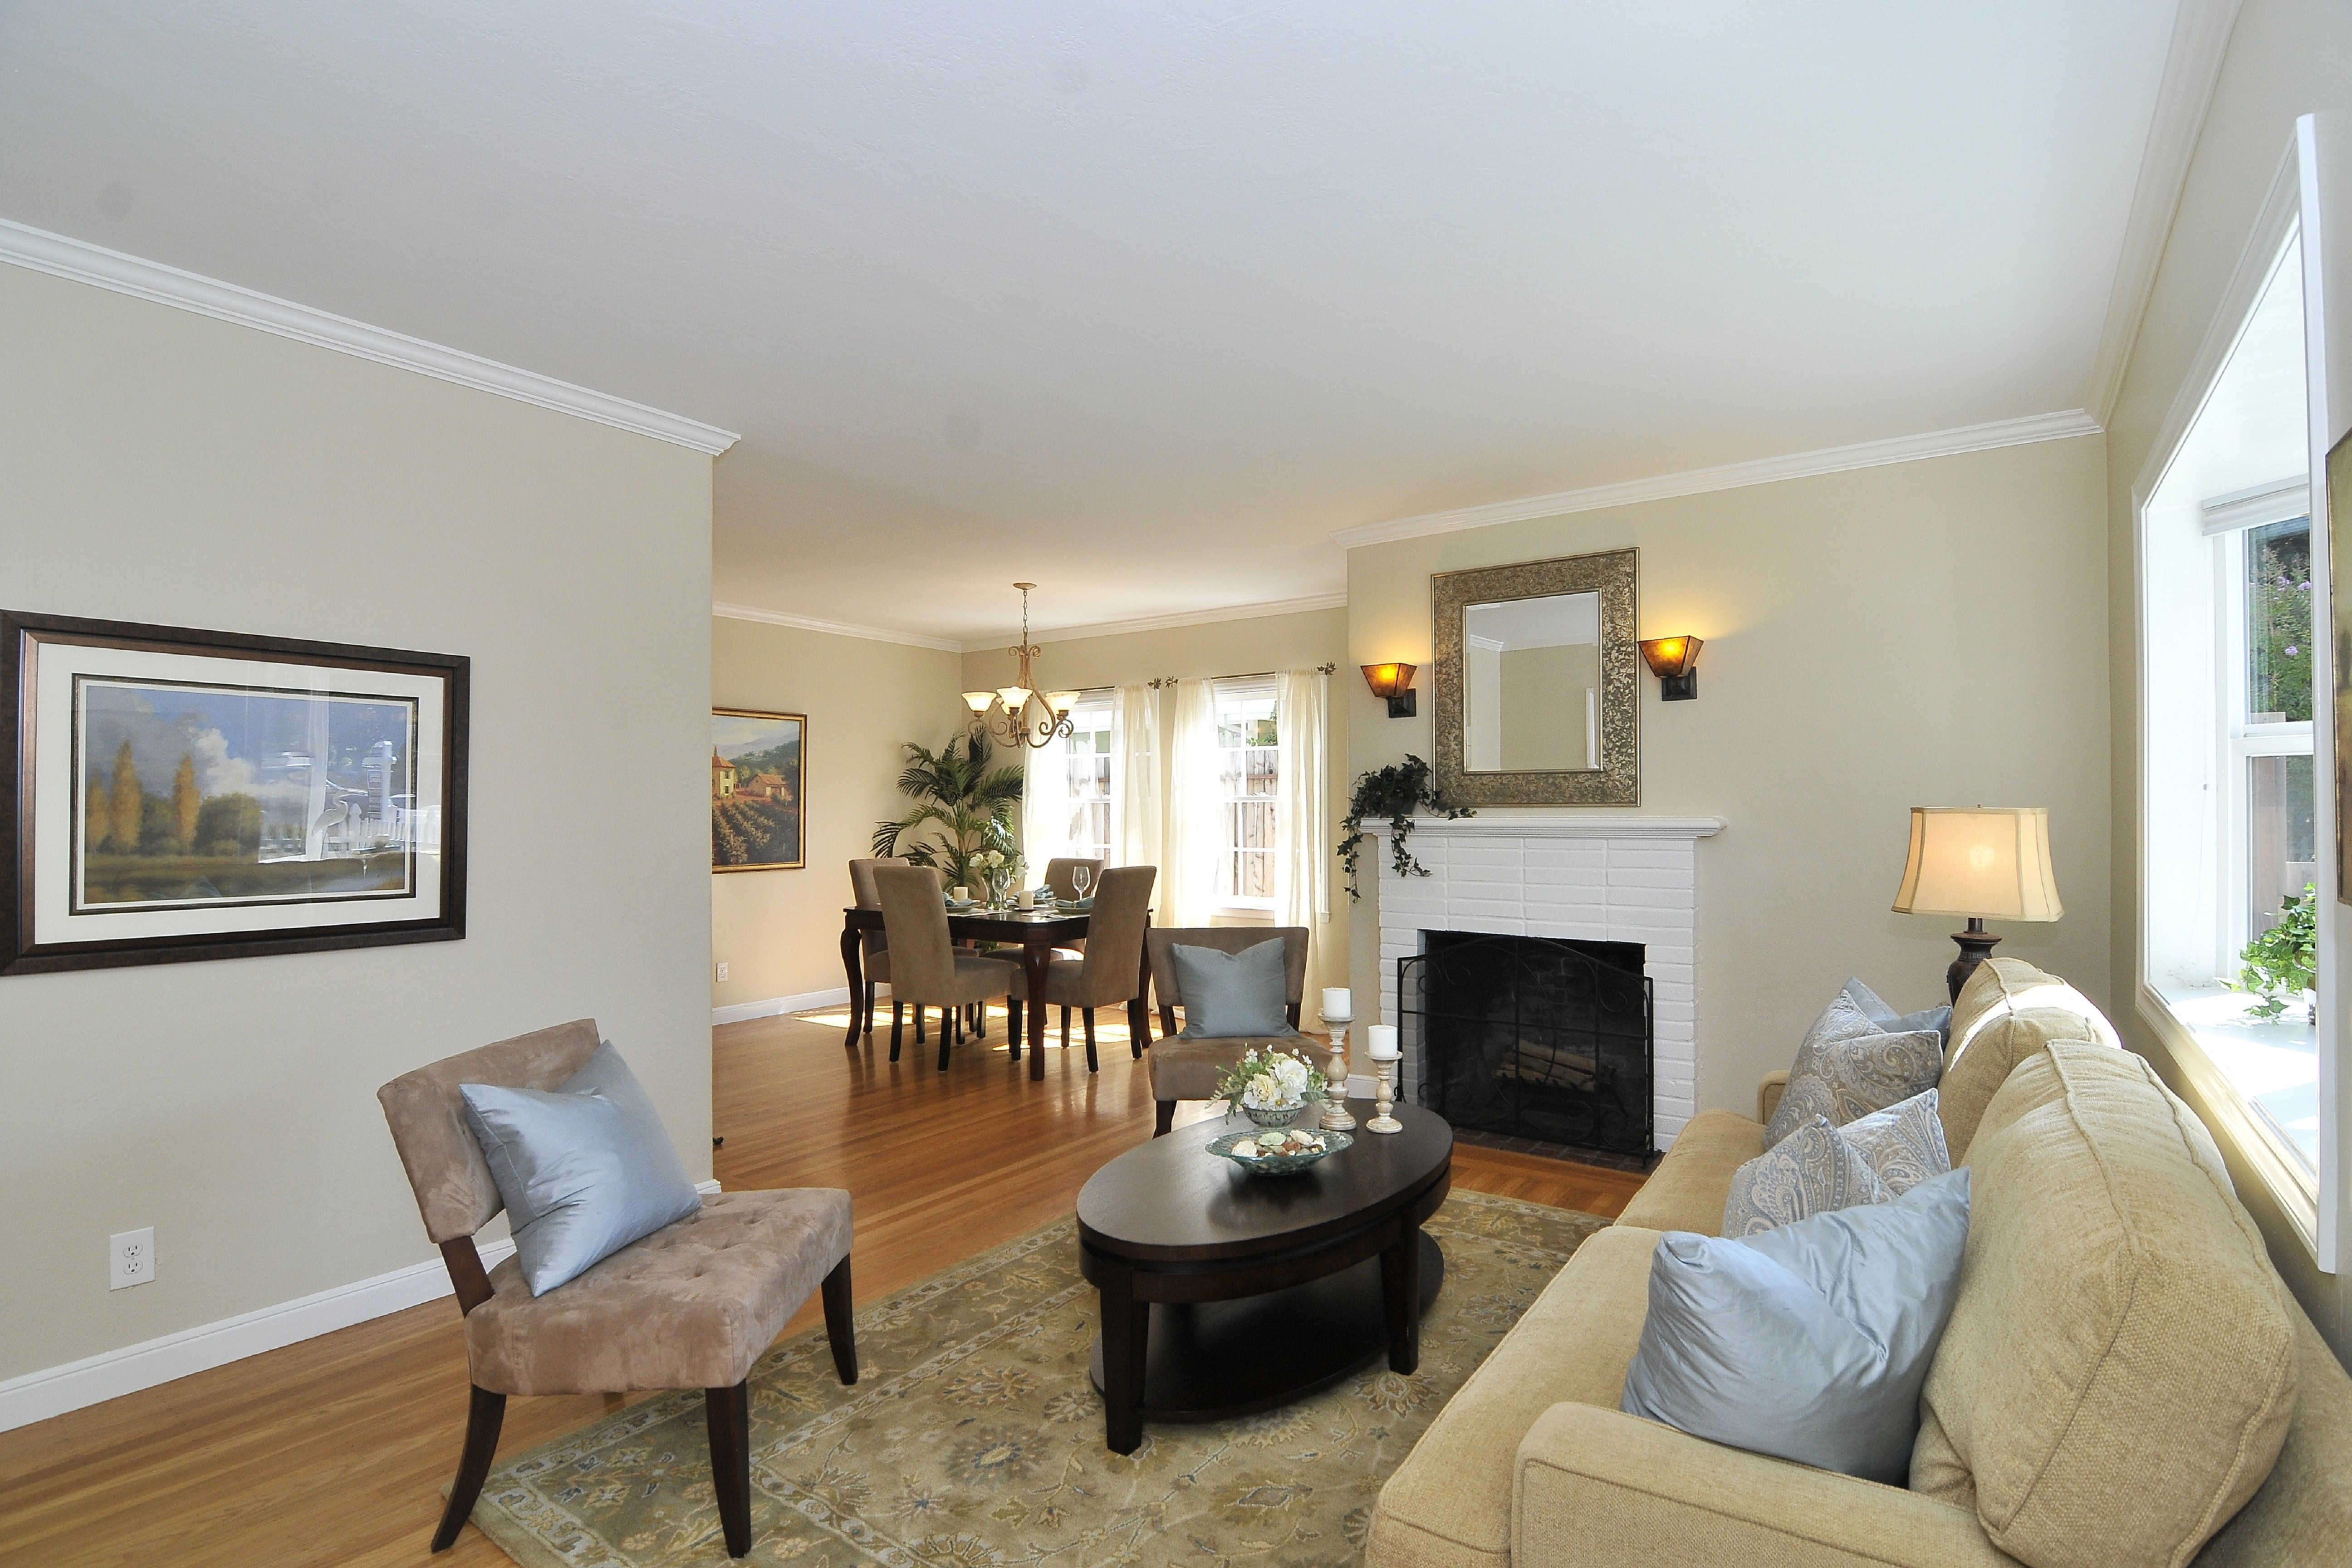 Staging your house for sale 28 images rachel s nest for Staging your house for sale